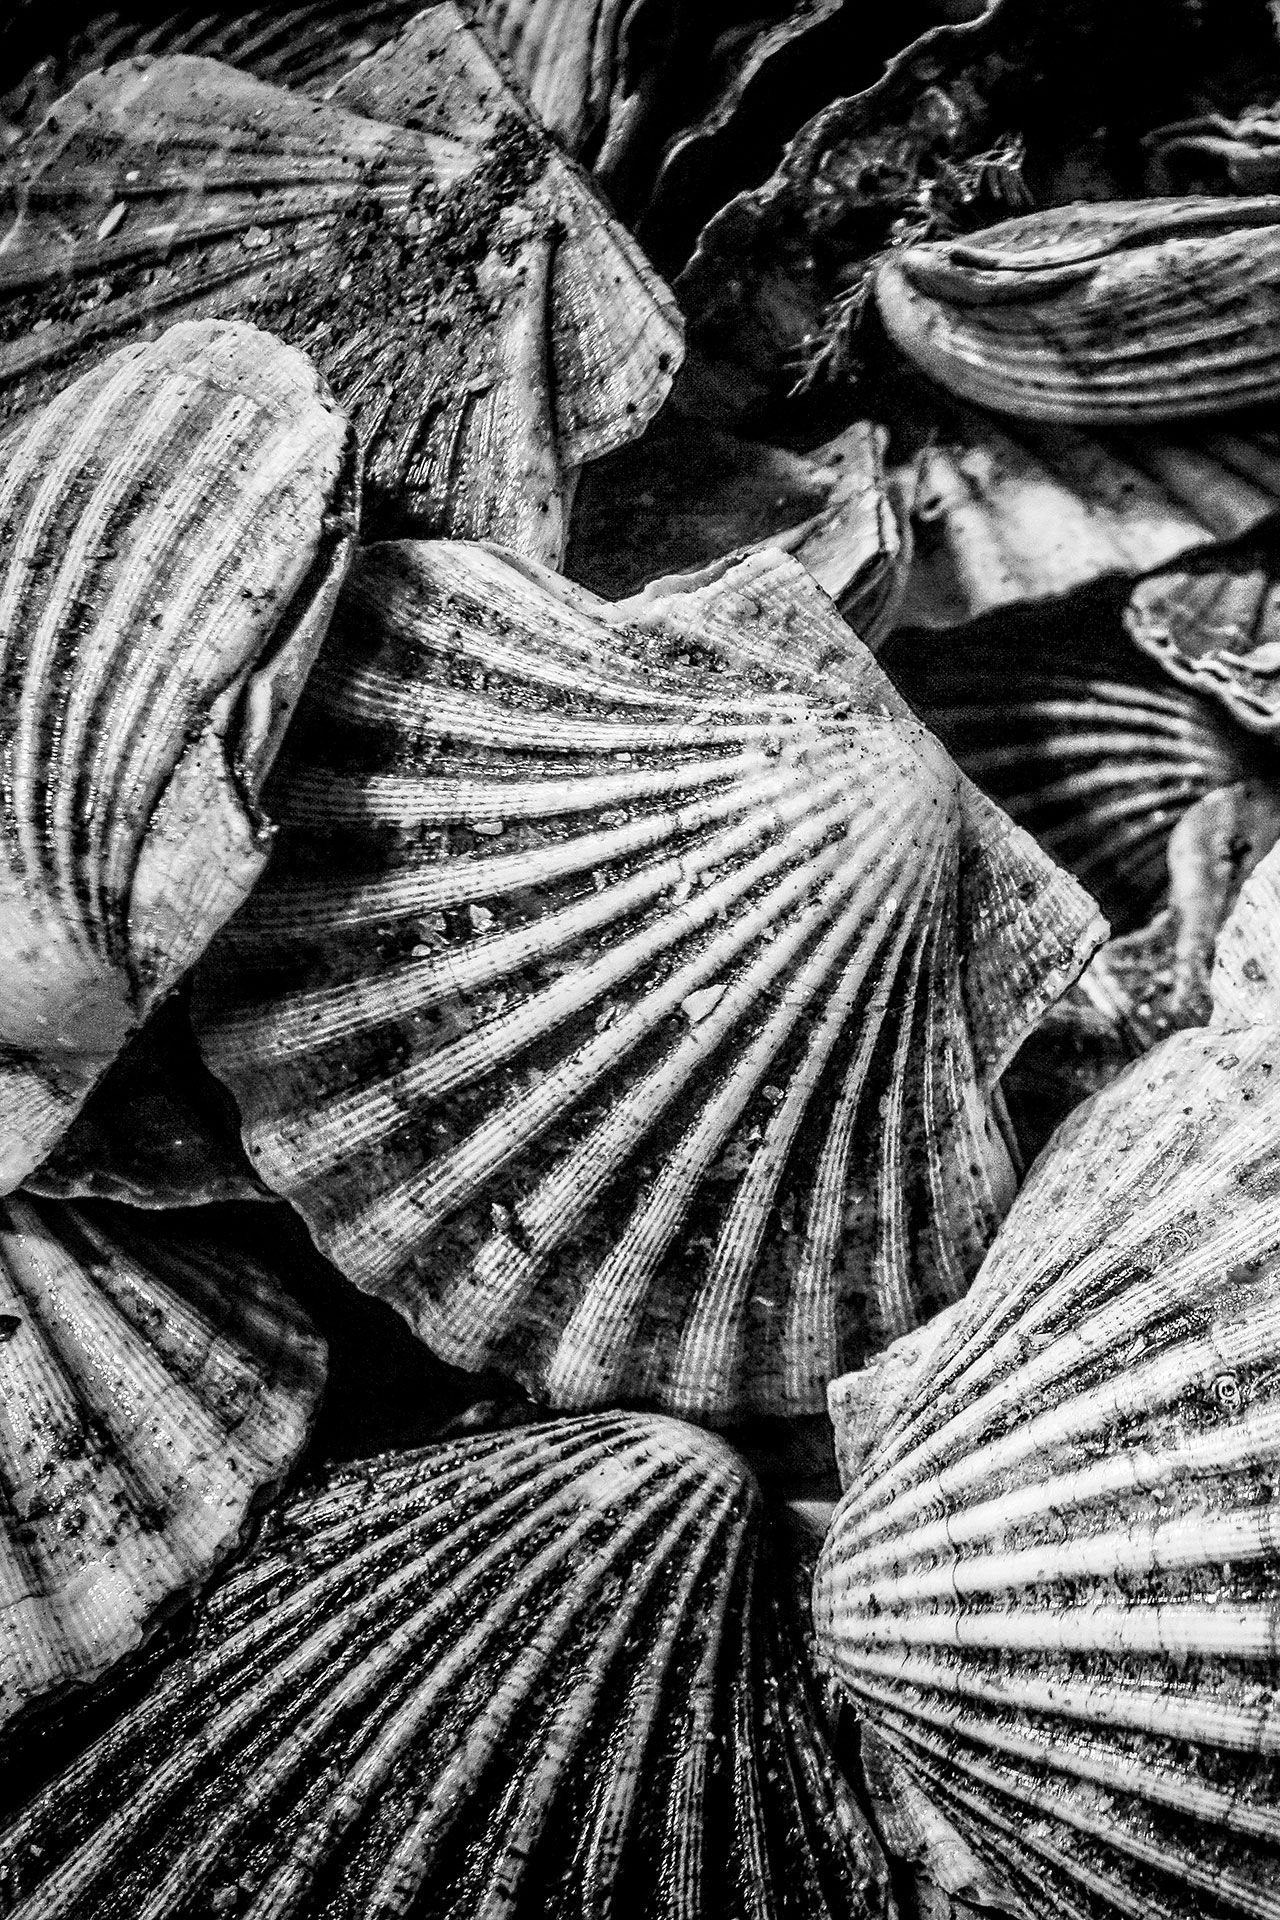 Clams-in-black-and-white.jpg